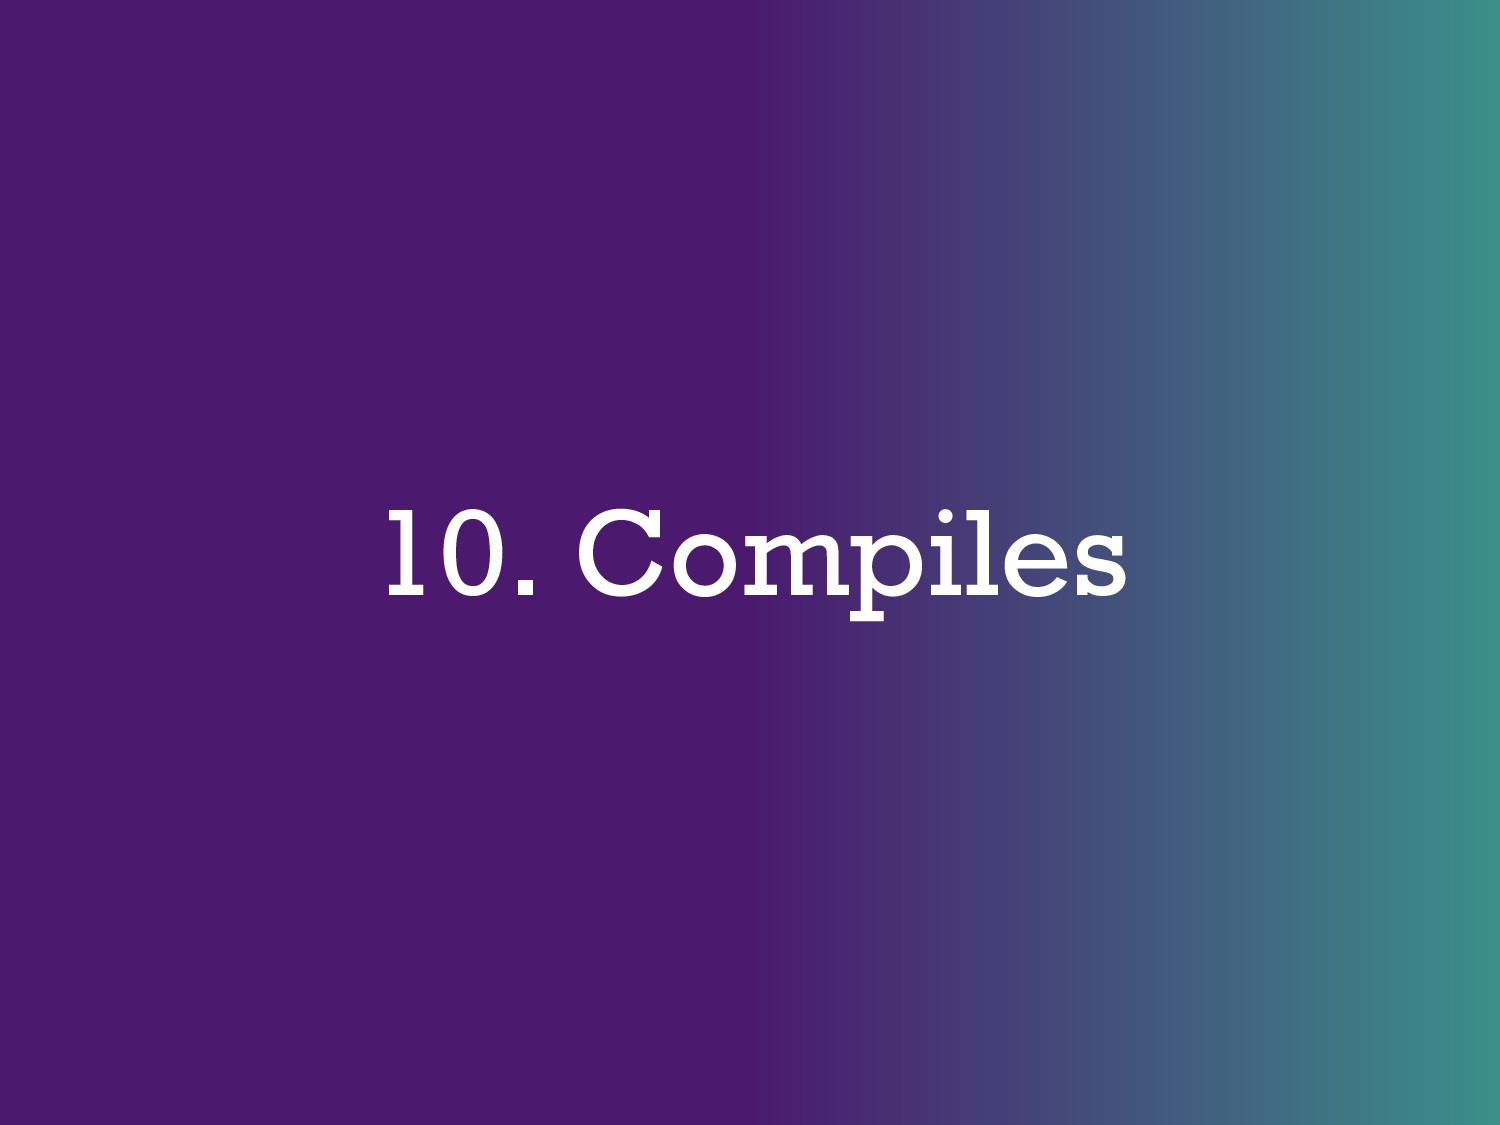 10. Compiles